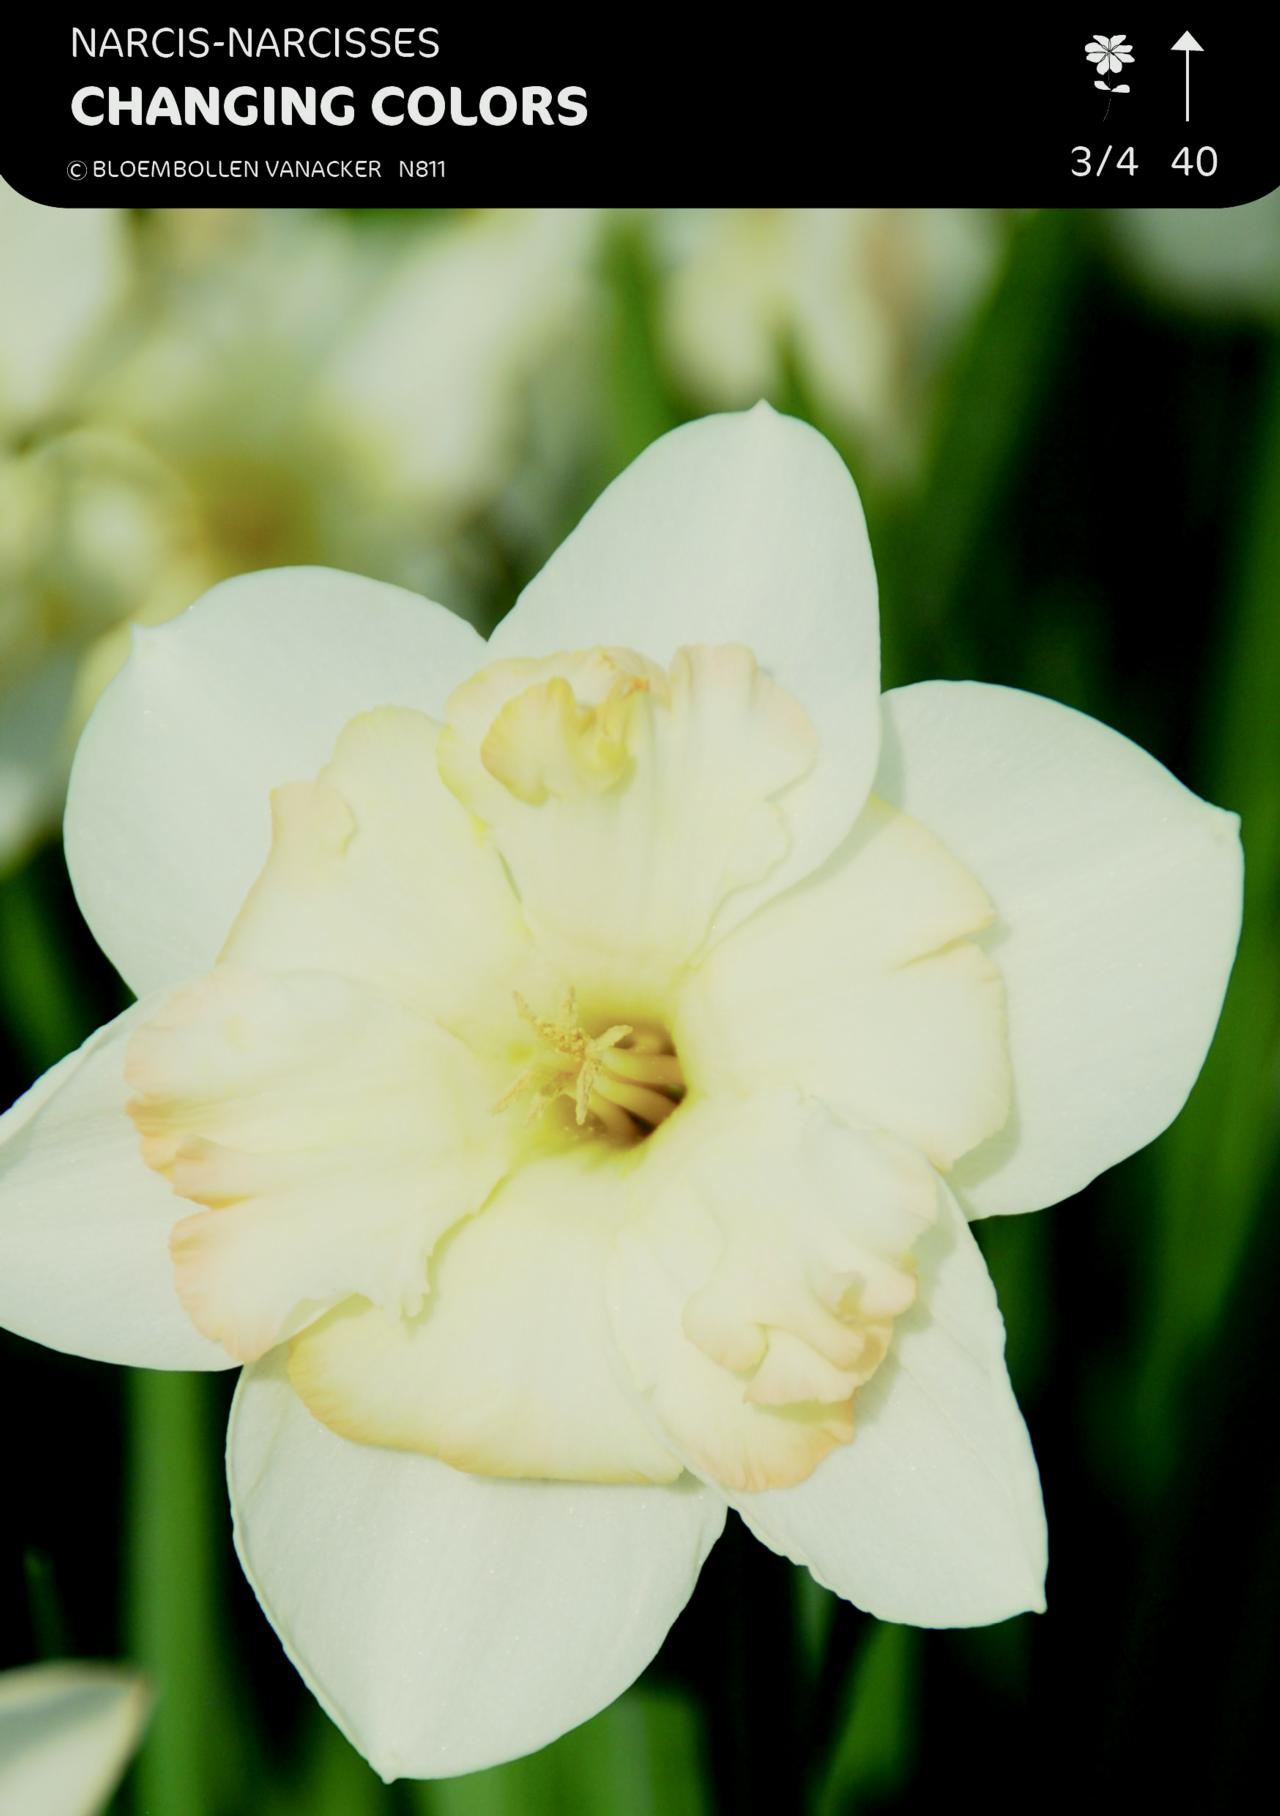 Narcissus 'Changing Colors' plant